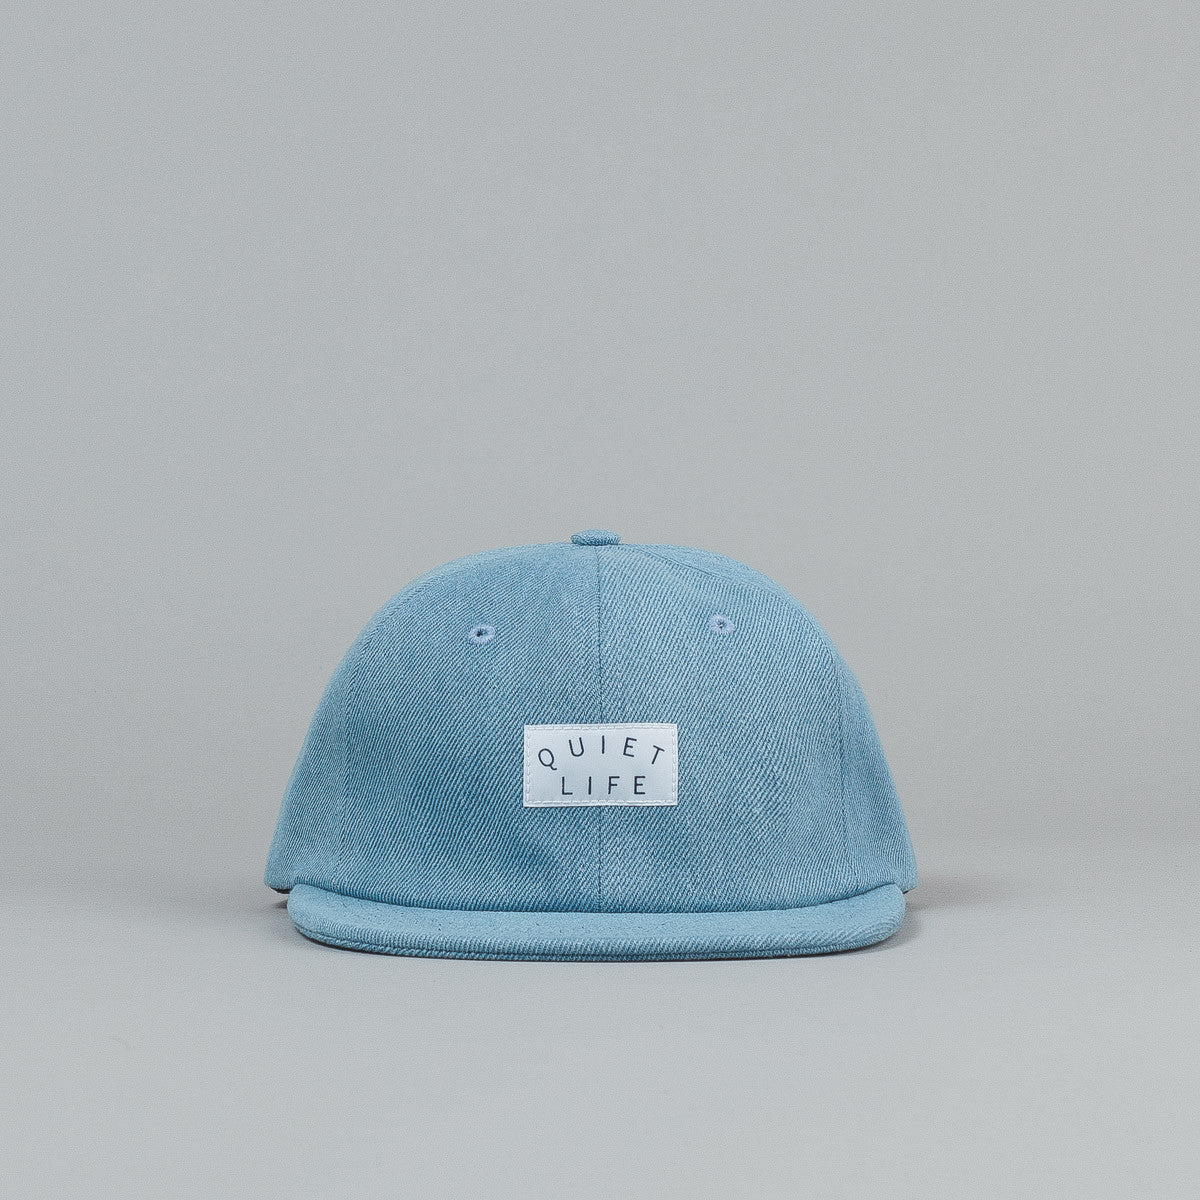 The Quiet Life Denim Polo Cap - Light Blue Denim